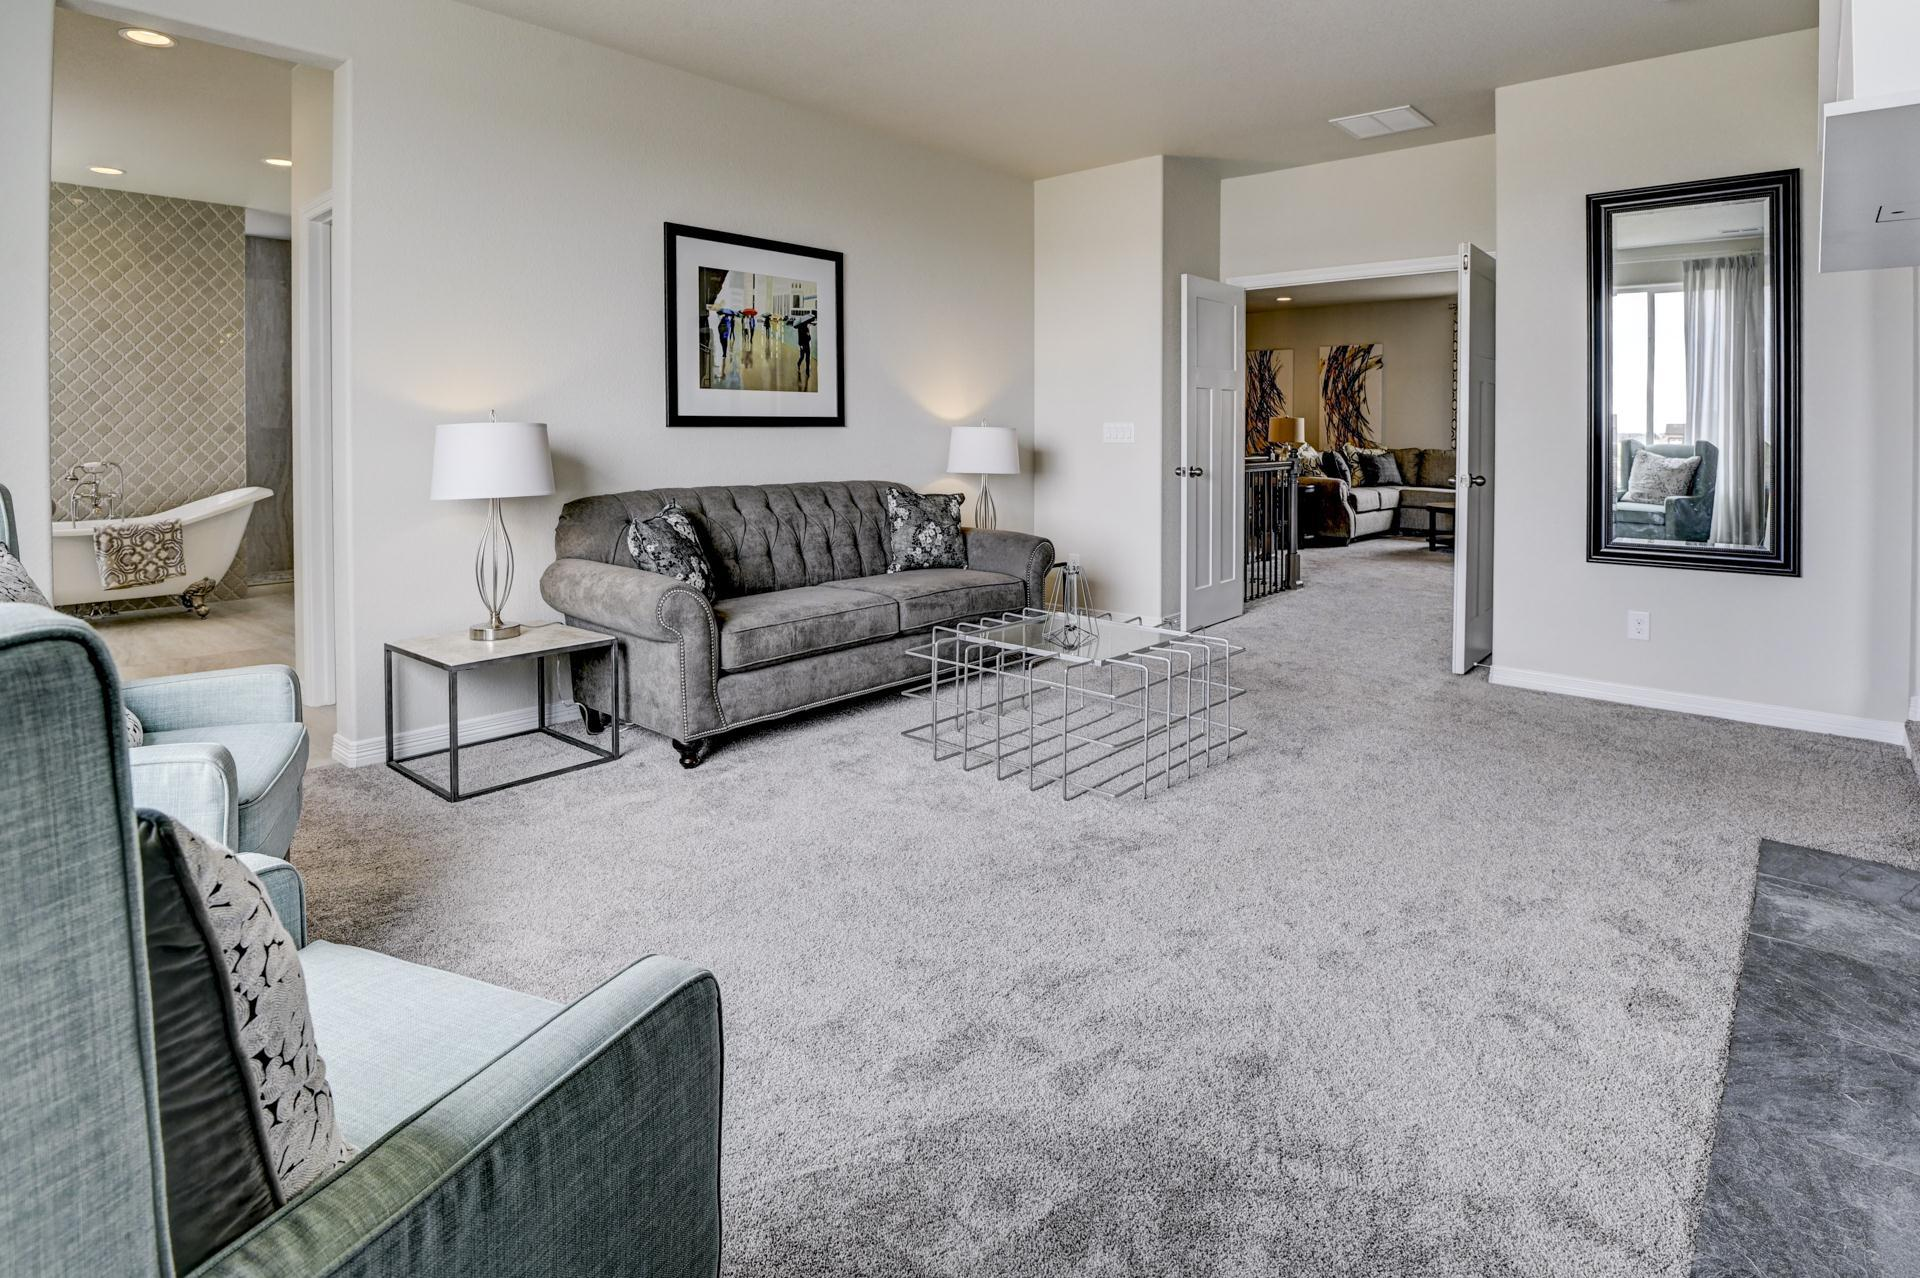 Bedroom featured in the Sunlight Peak (Slab) By Reunion Homes in Colorado Springs, CO